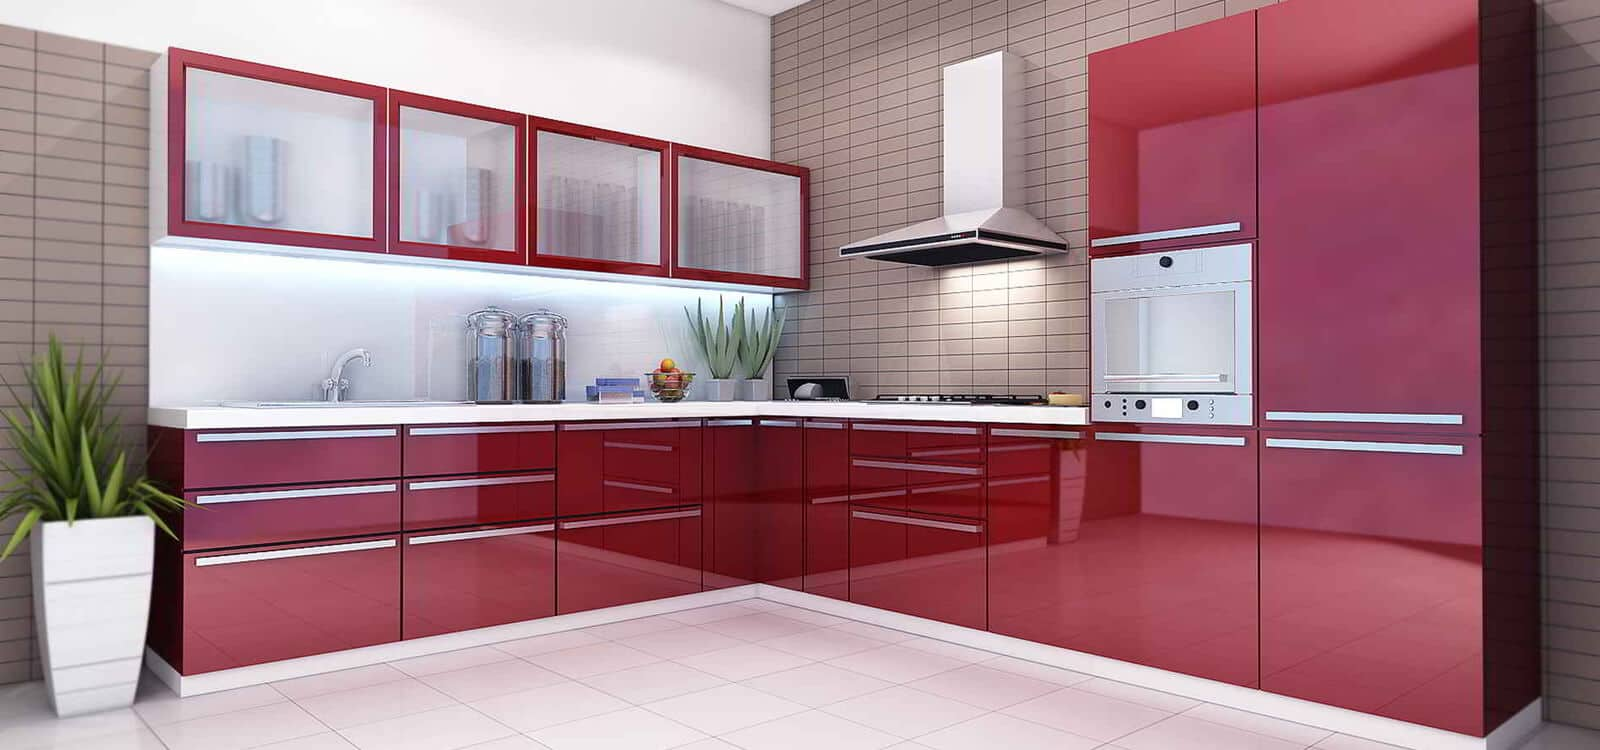 Kitchen Zone - Interior Designers, Interiors, Modular Kitchen